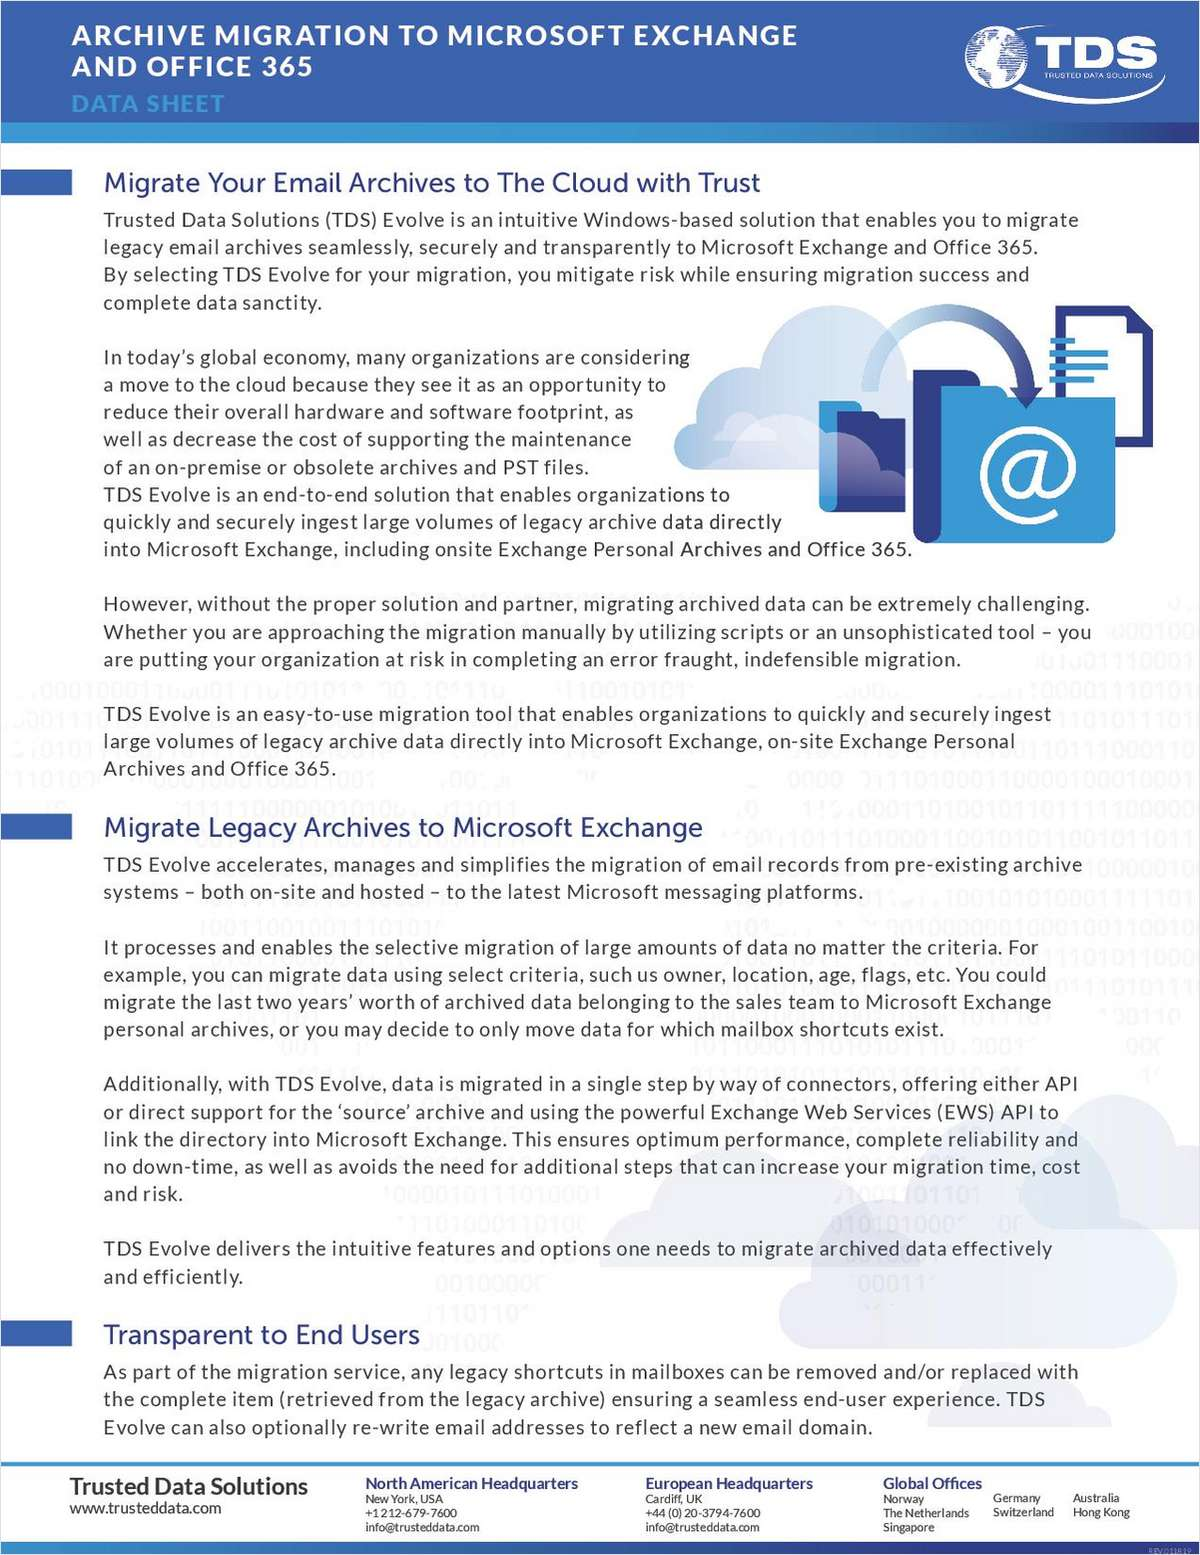 Archive Migration to Microsoft Exchange and Office 365 Free White Paper